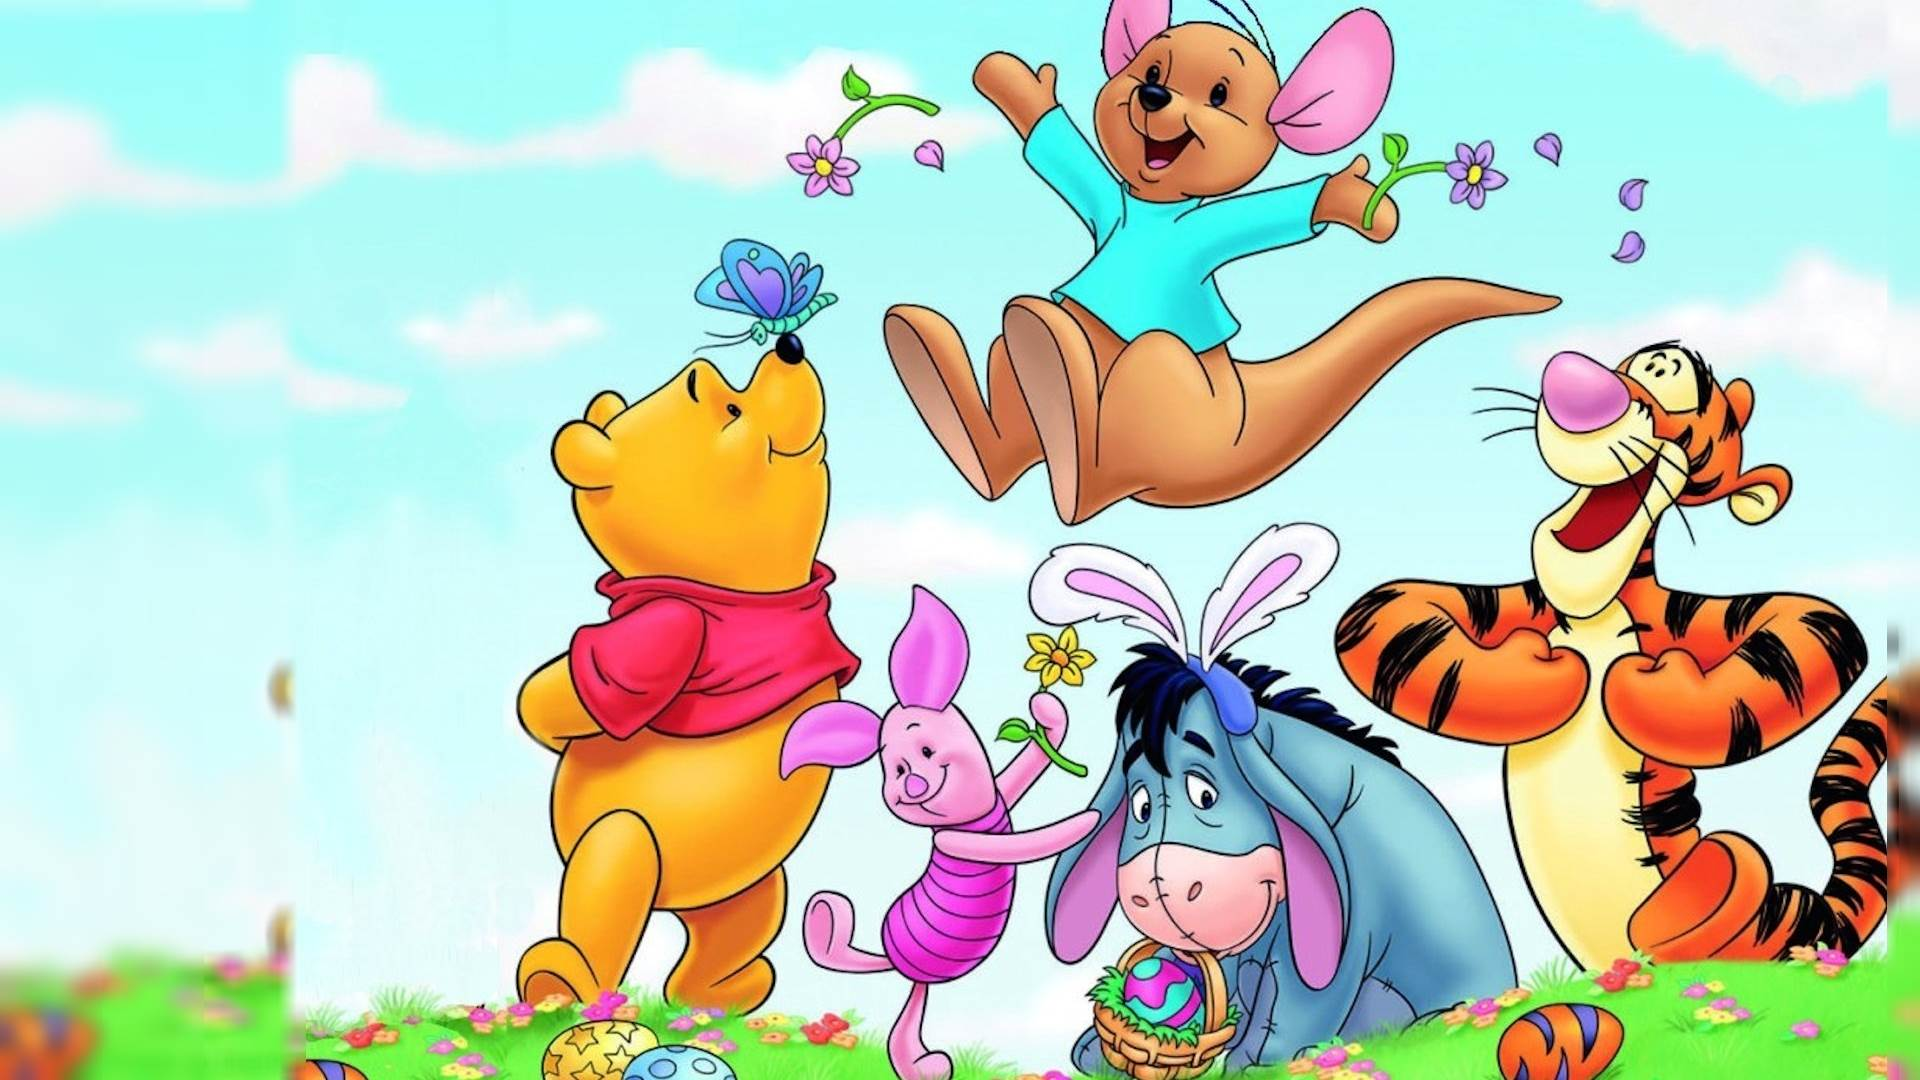 High Resolution Disney Cartoon Winnie The Pooh Wallpaper HD 13 Full Size - SiWallpaperHD 3240